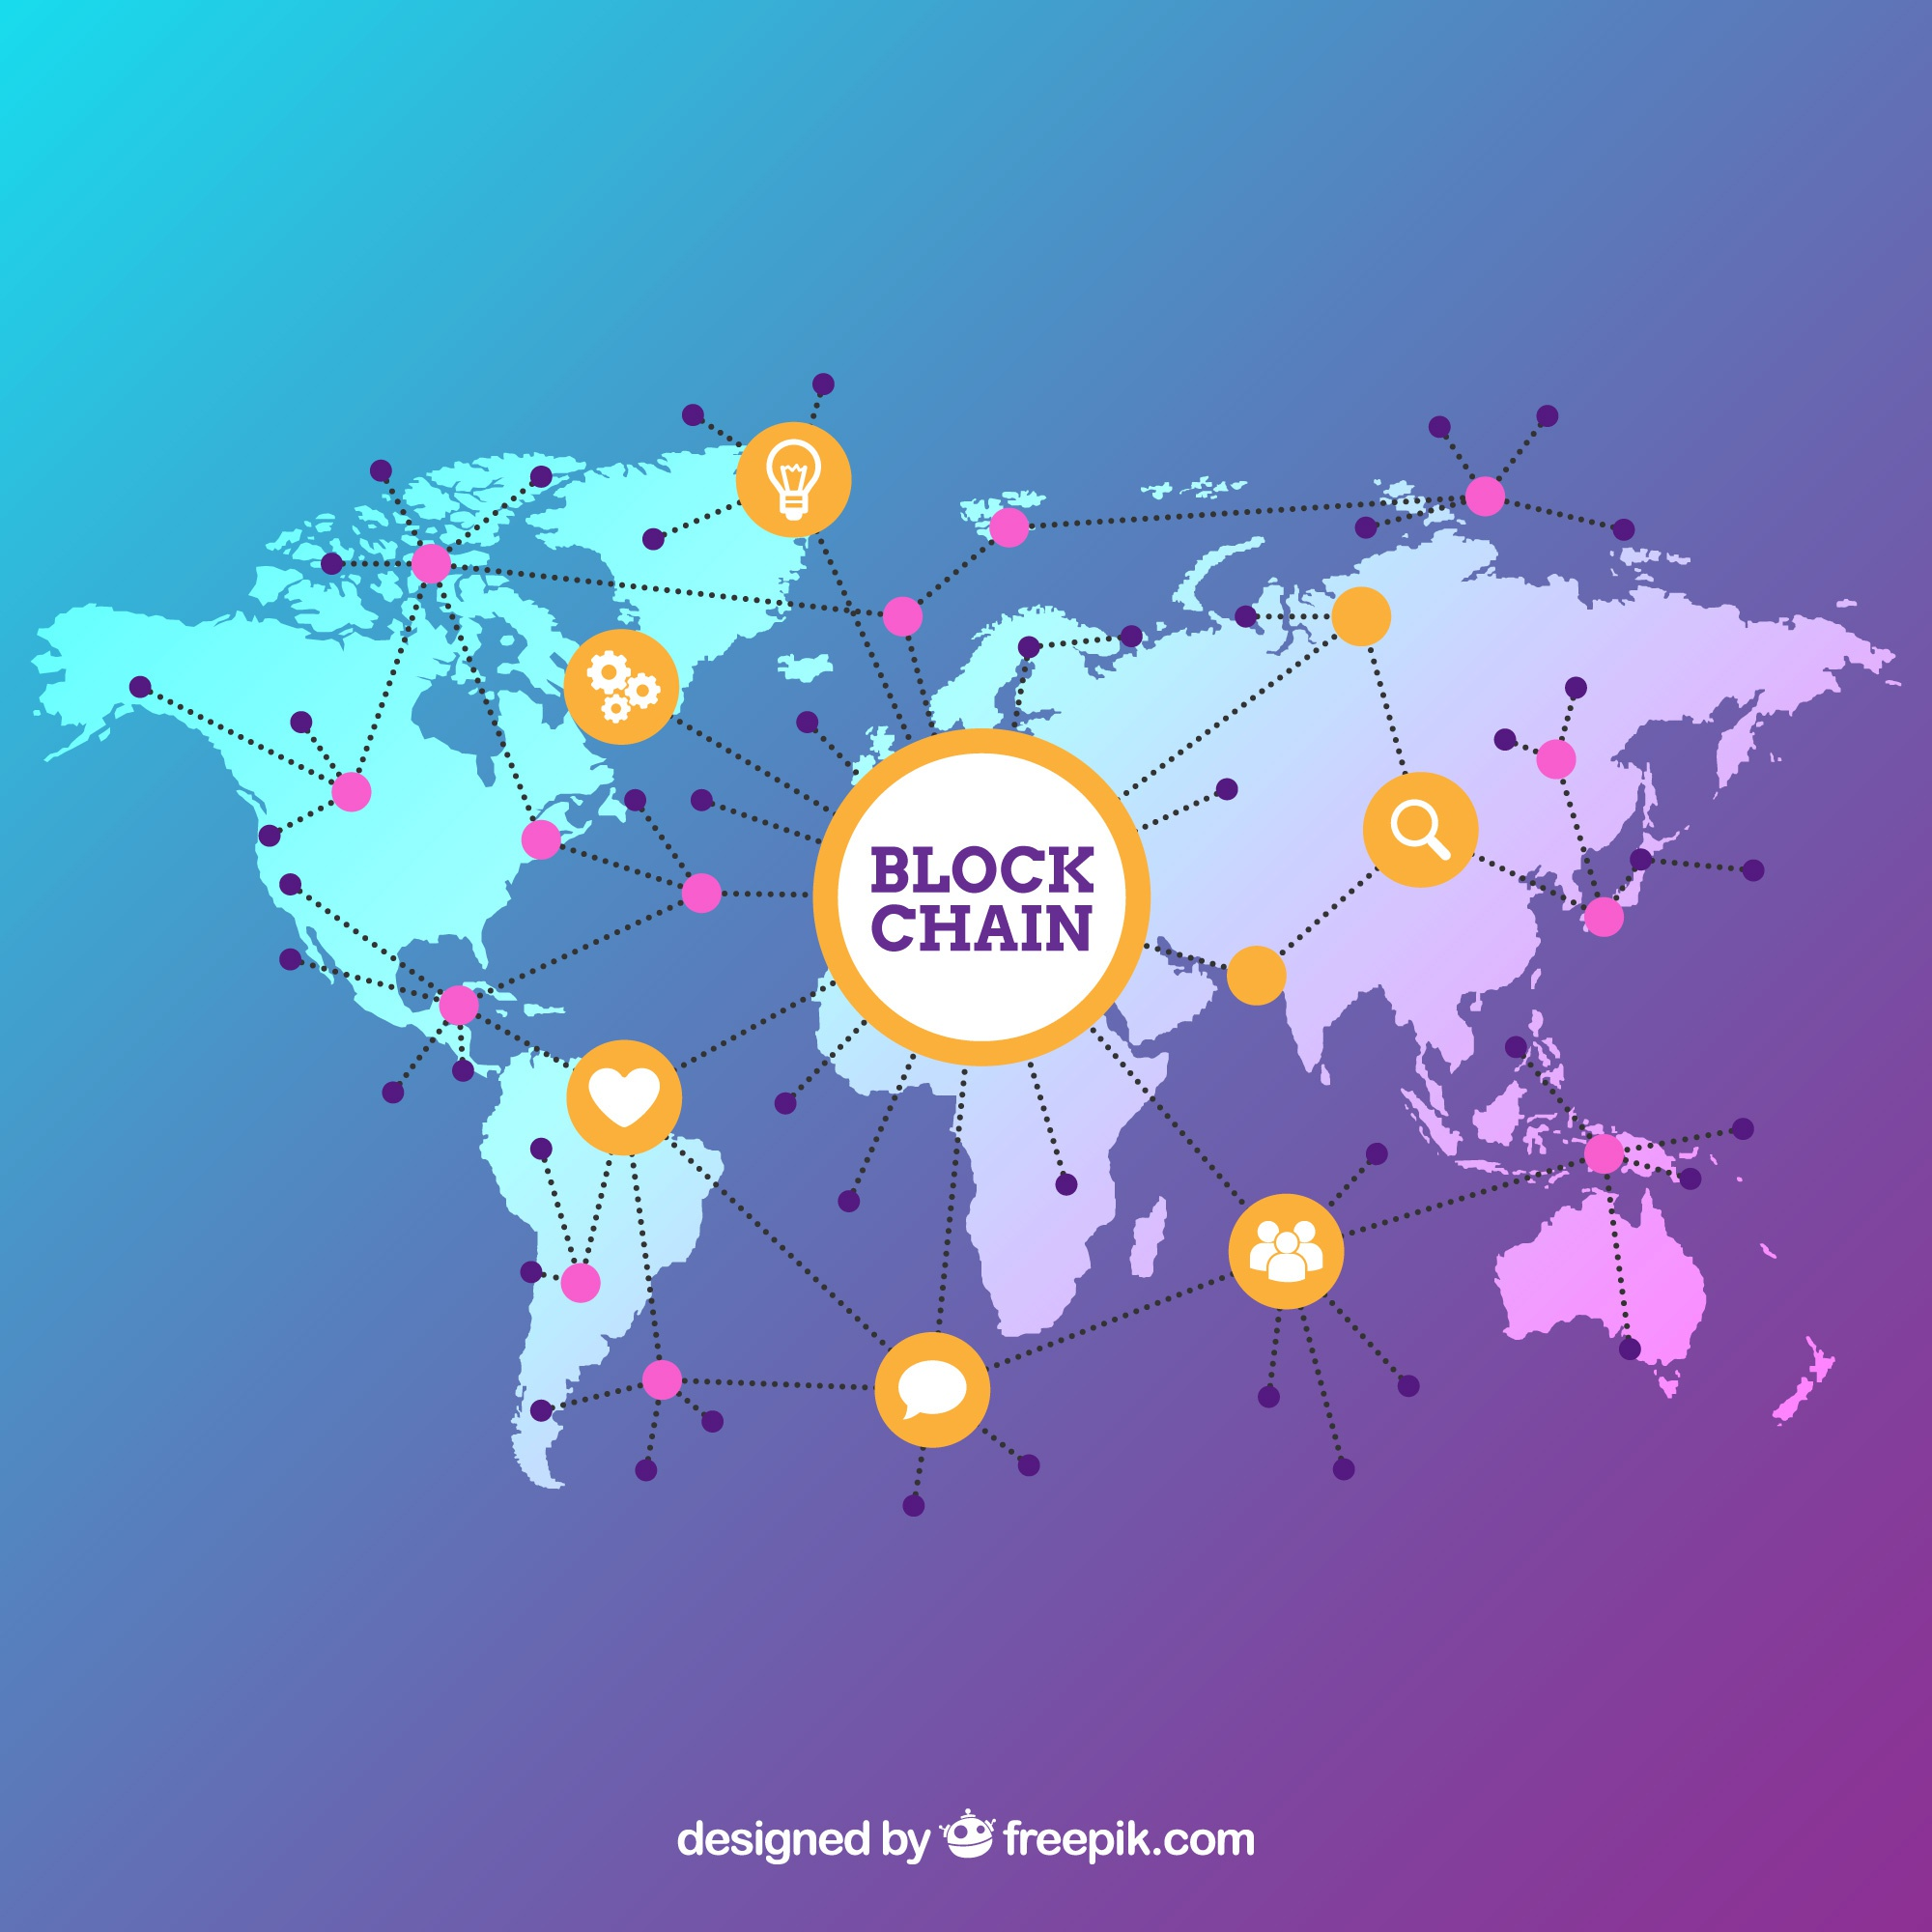 Map vectors 12200 free files in eps format blockchain background with world map gumiabroncs Choice Image